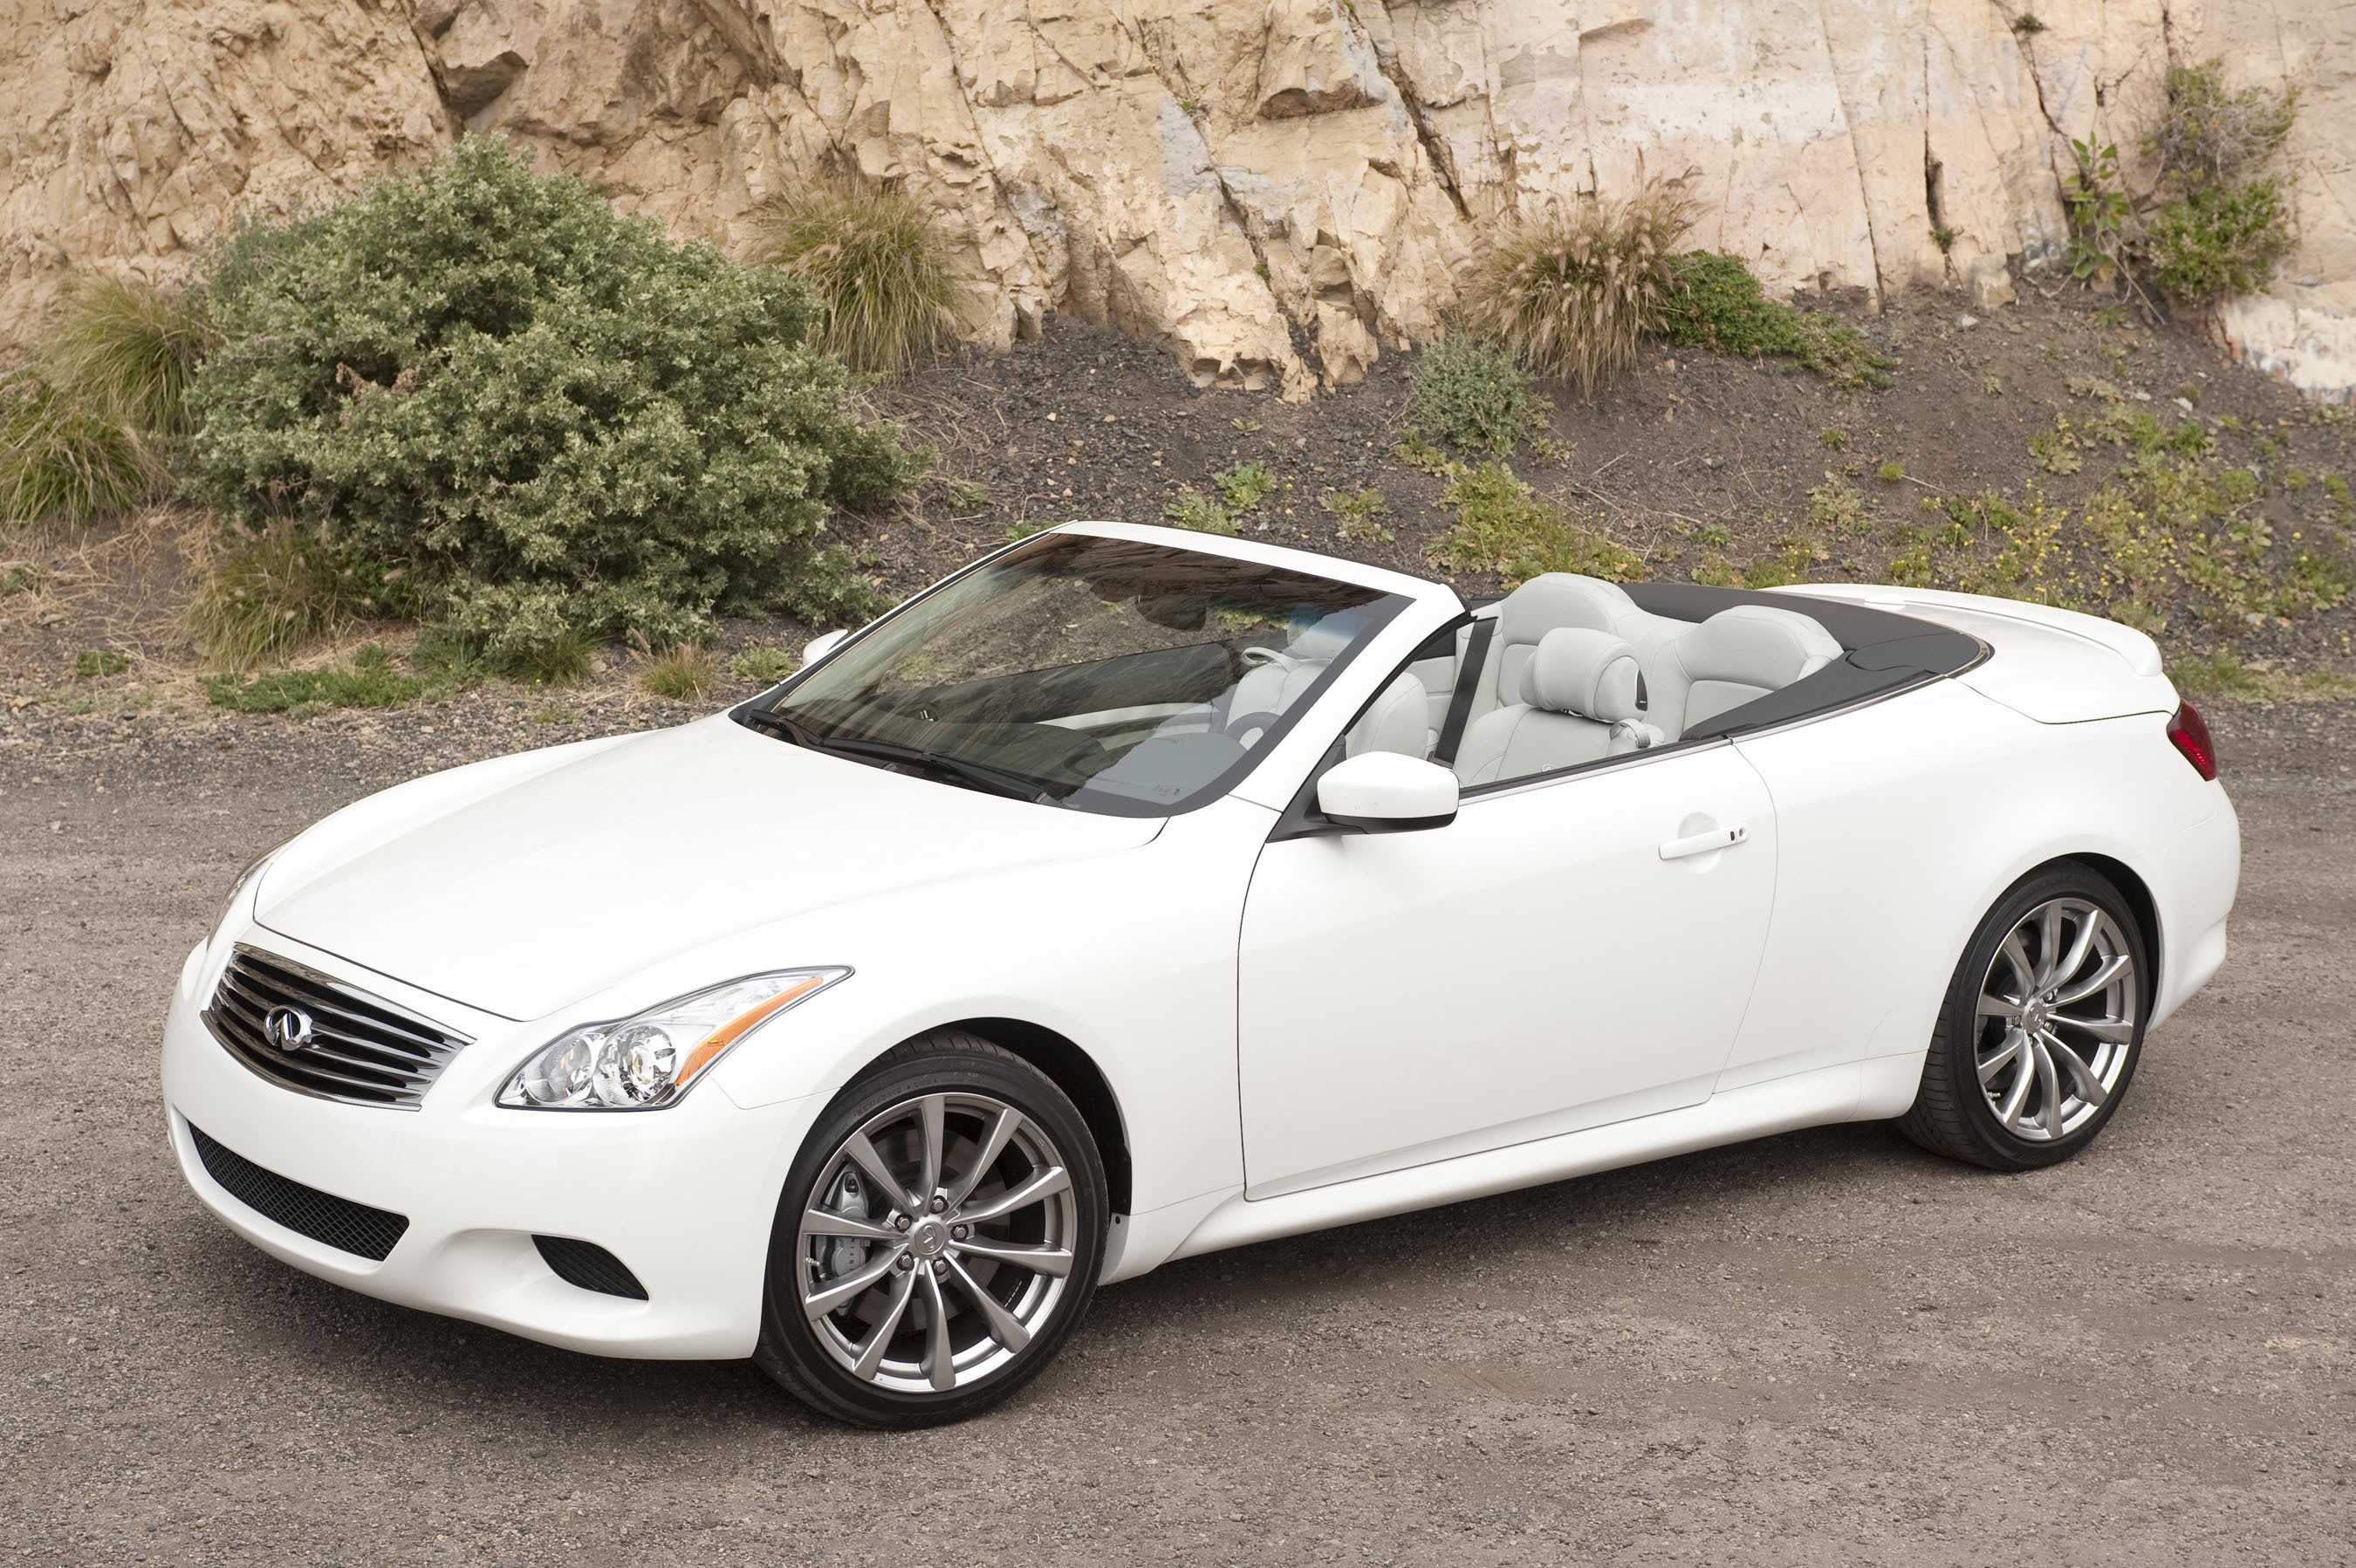 spartanburg com for img in sale convertible auto sc new infiniti and used infinity cars